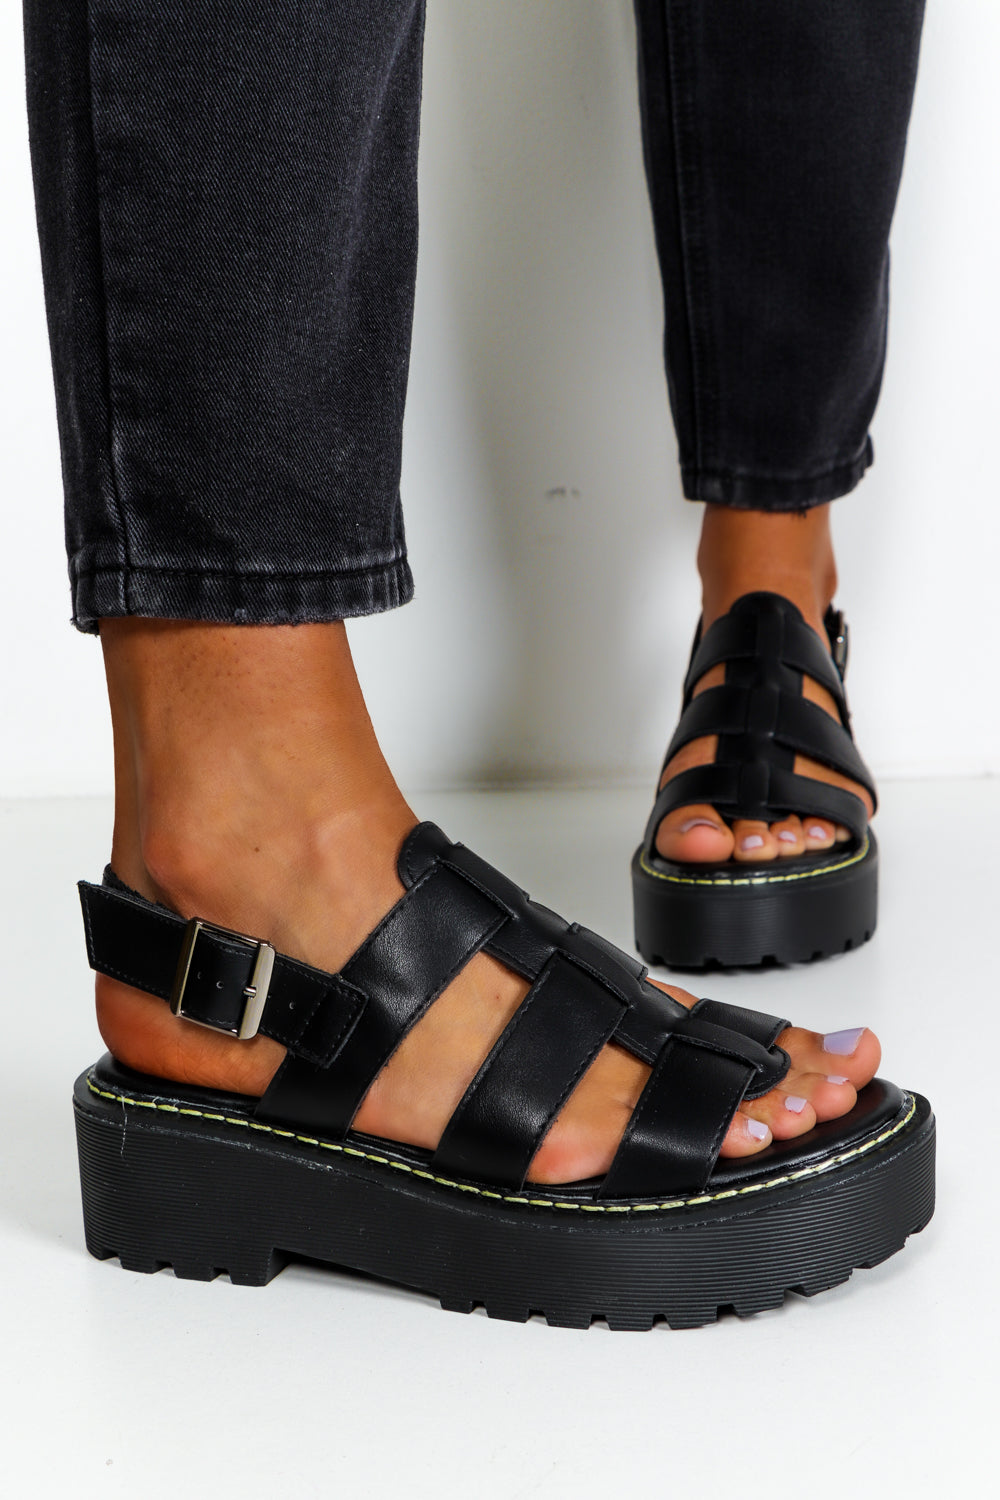 Black Faux Leather Chunky Sandals DLSB Womens Fashion